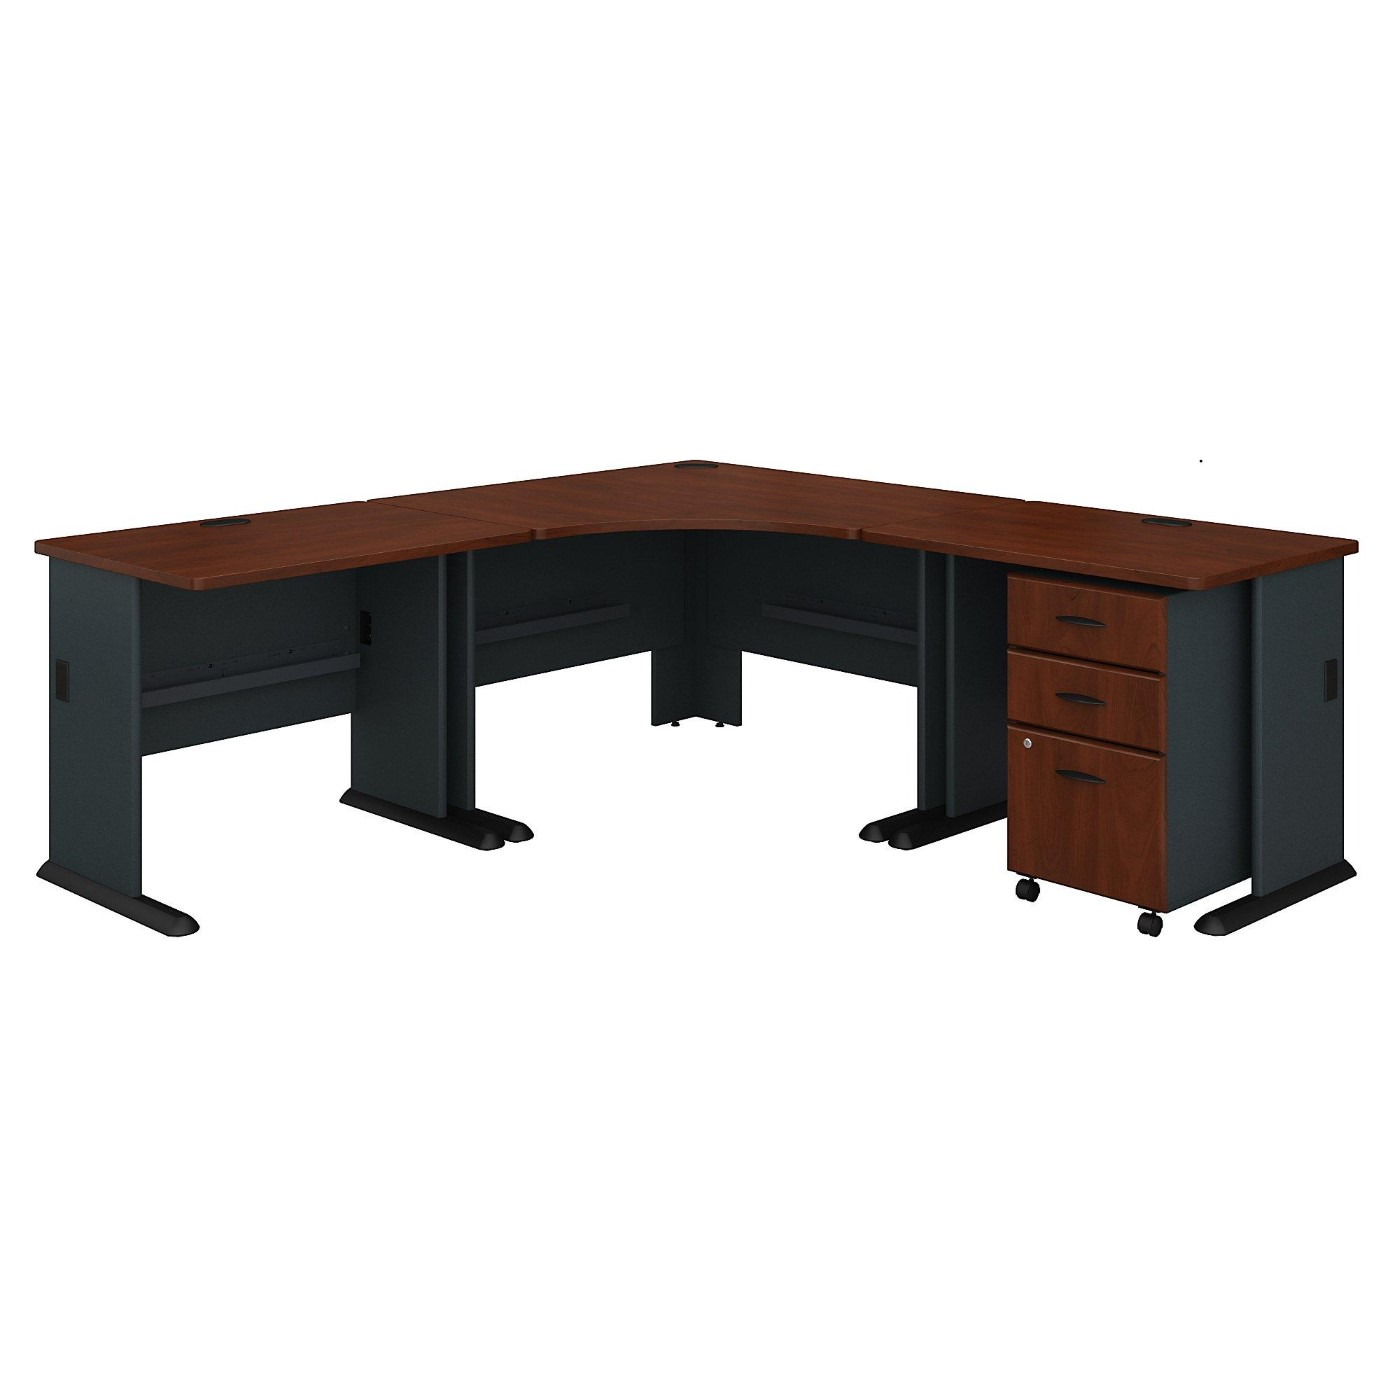 BUSH BUSINESS FURNITURE SERIES A 84W X 84D CORNER DESK WITH MOBILE FILE CABINET. FREE SHIPPING.